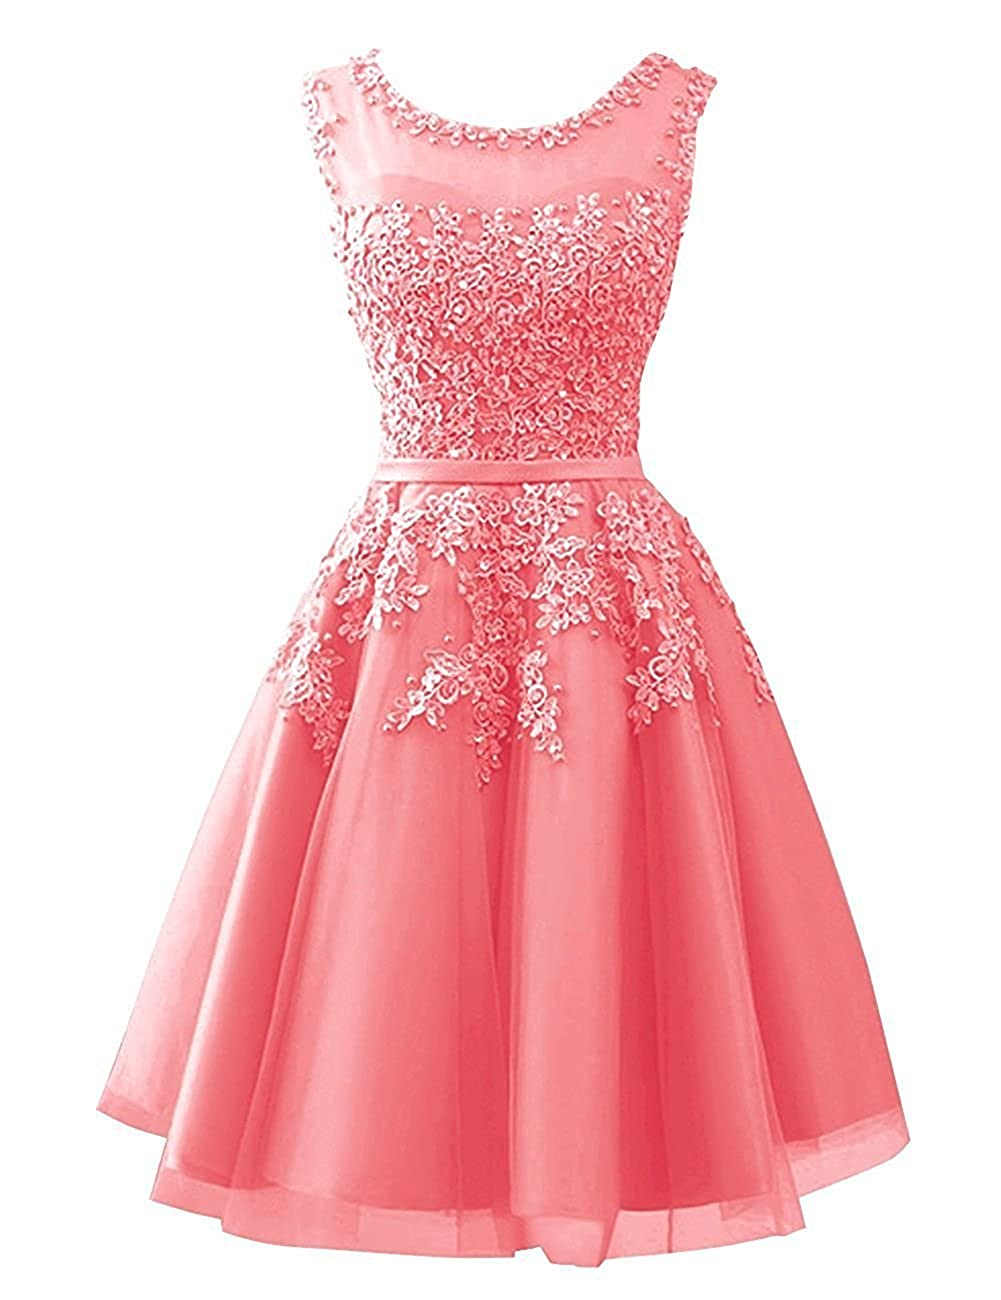 Coral Cdress Tulle Short Junior Homecoming Dresses Prom Evening Dress Party Formal Gowns Lace Appliques